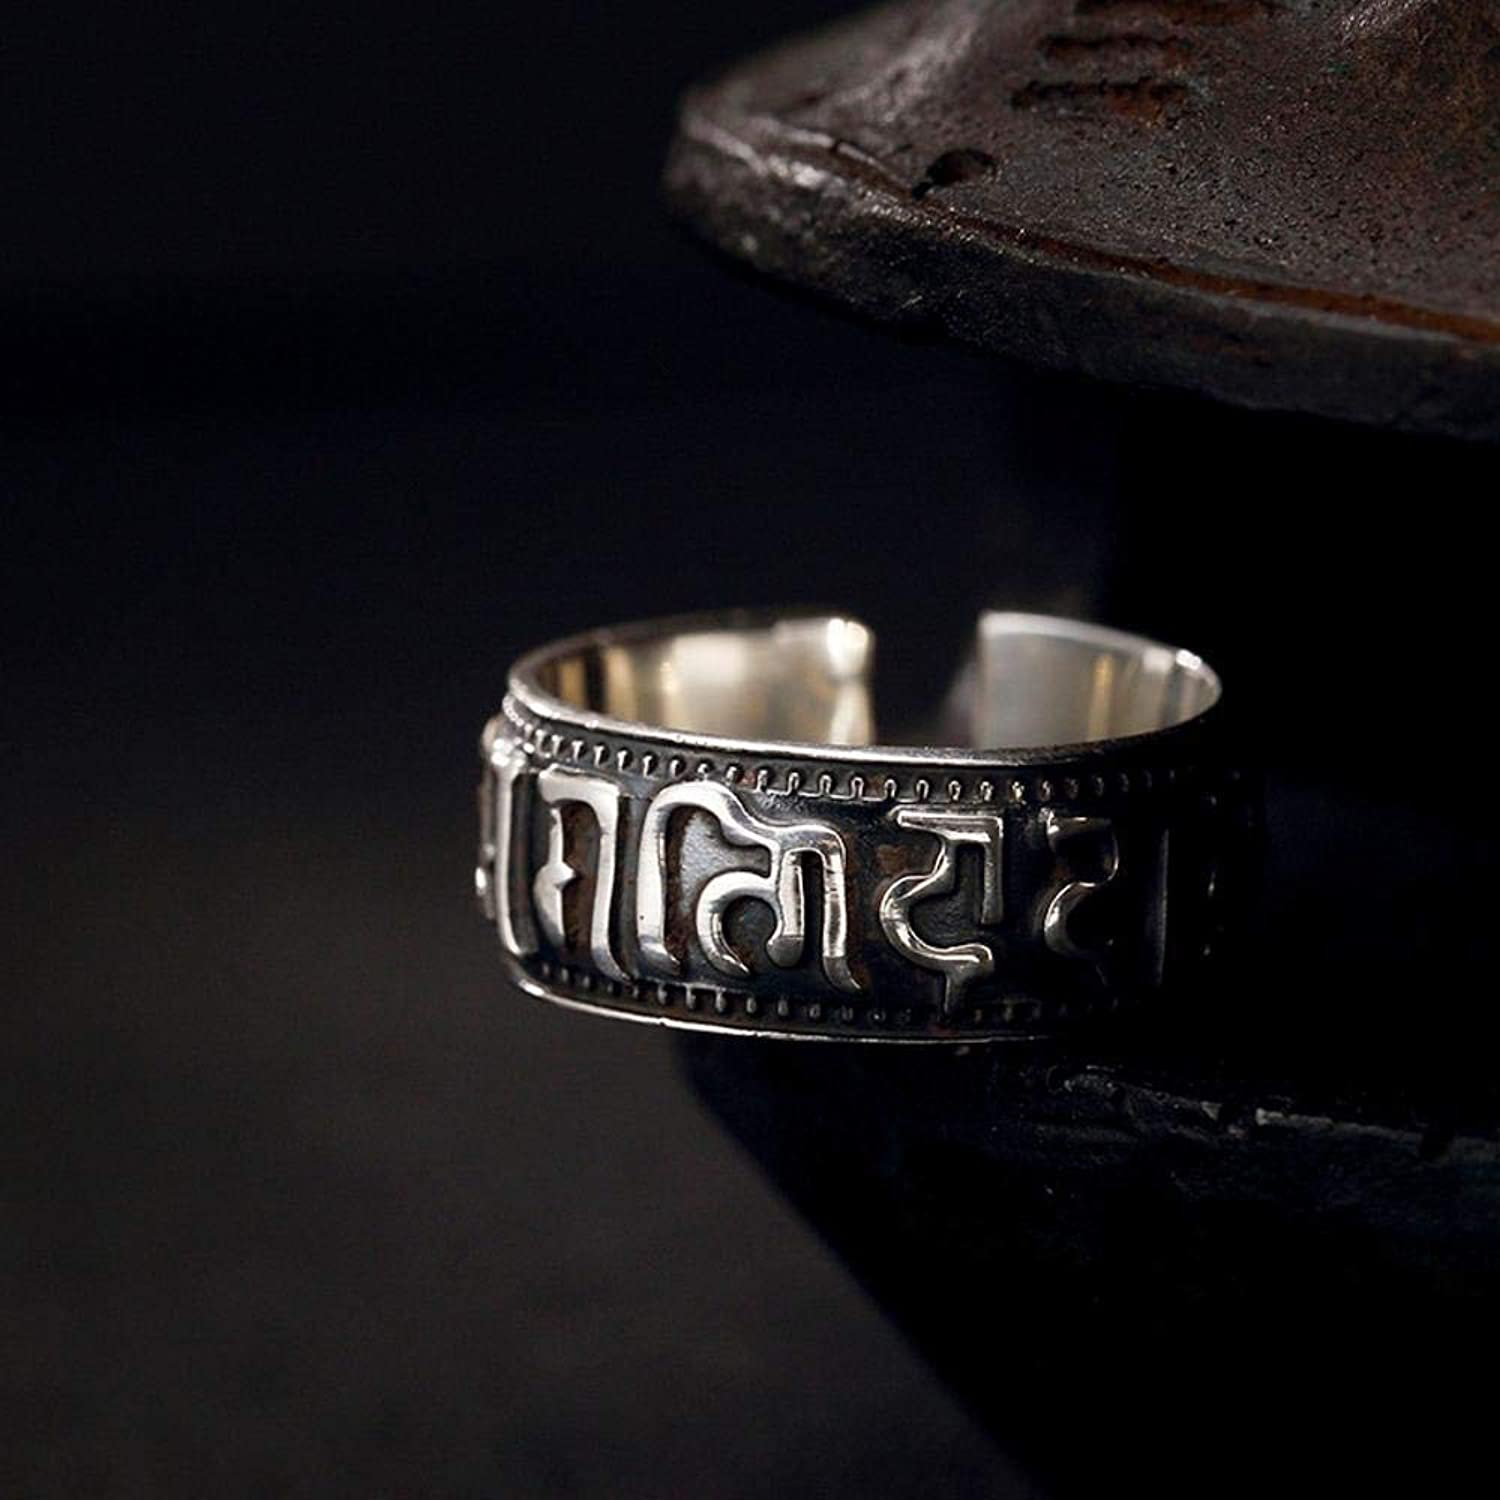 DTZH Rings Jewellery RingS999 Sterling Silver Retro Thai Silver Man Metal Punk Wind Buddhist sixWord Mantra Ring Give it to Dear People